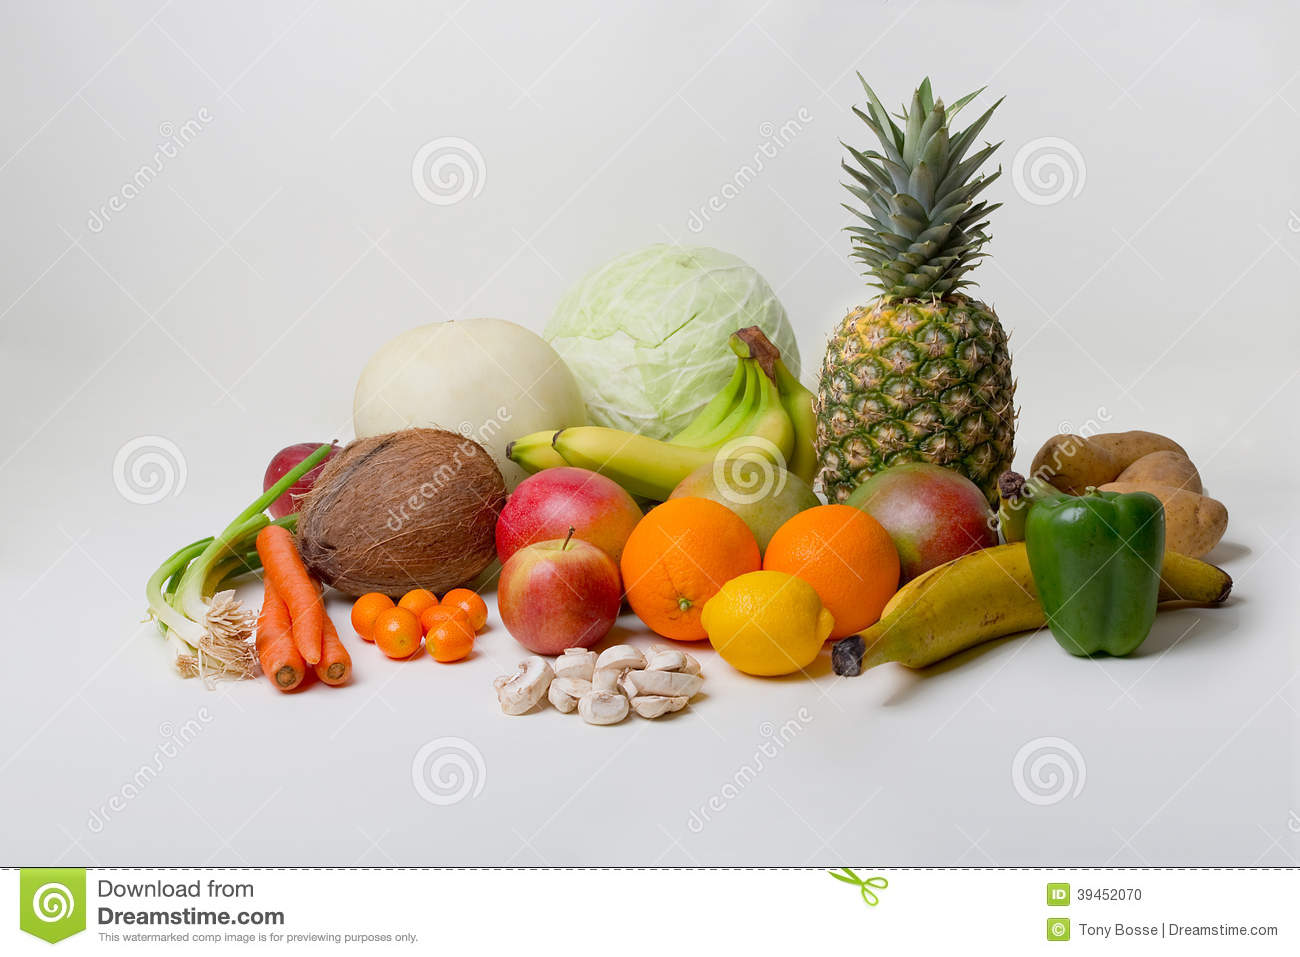 Tropical Fruits And Vegetables Stock Photo - Image: 39452070